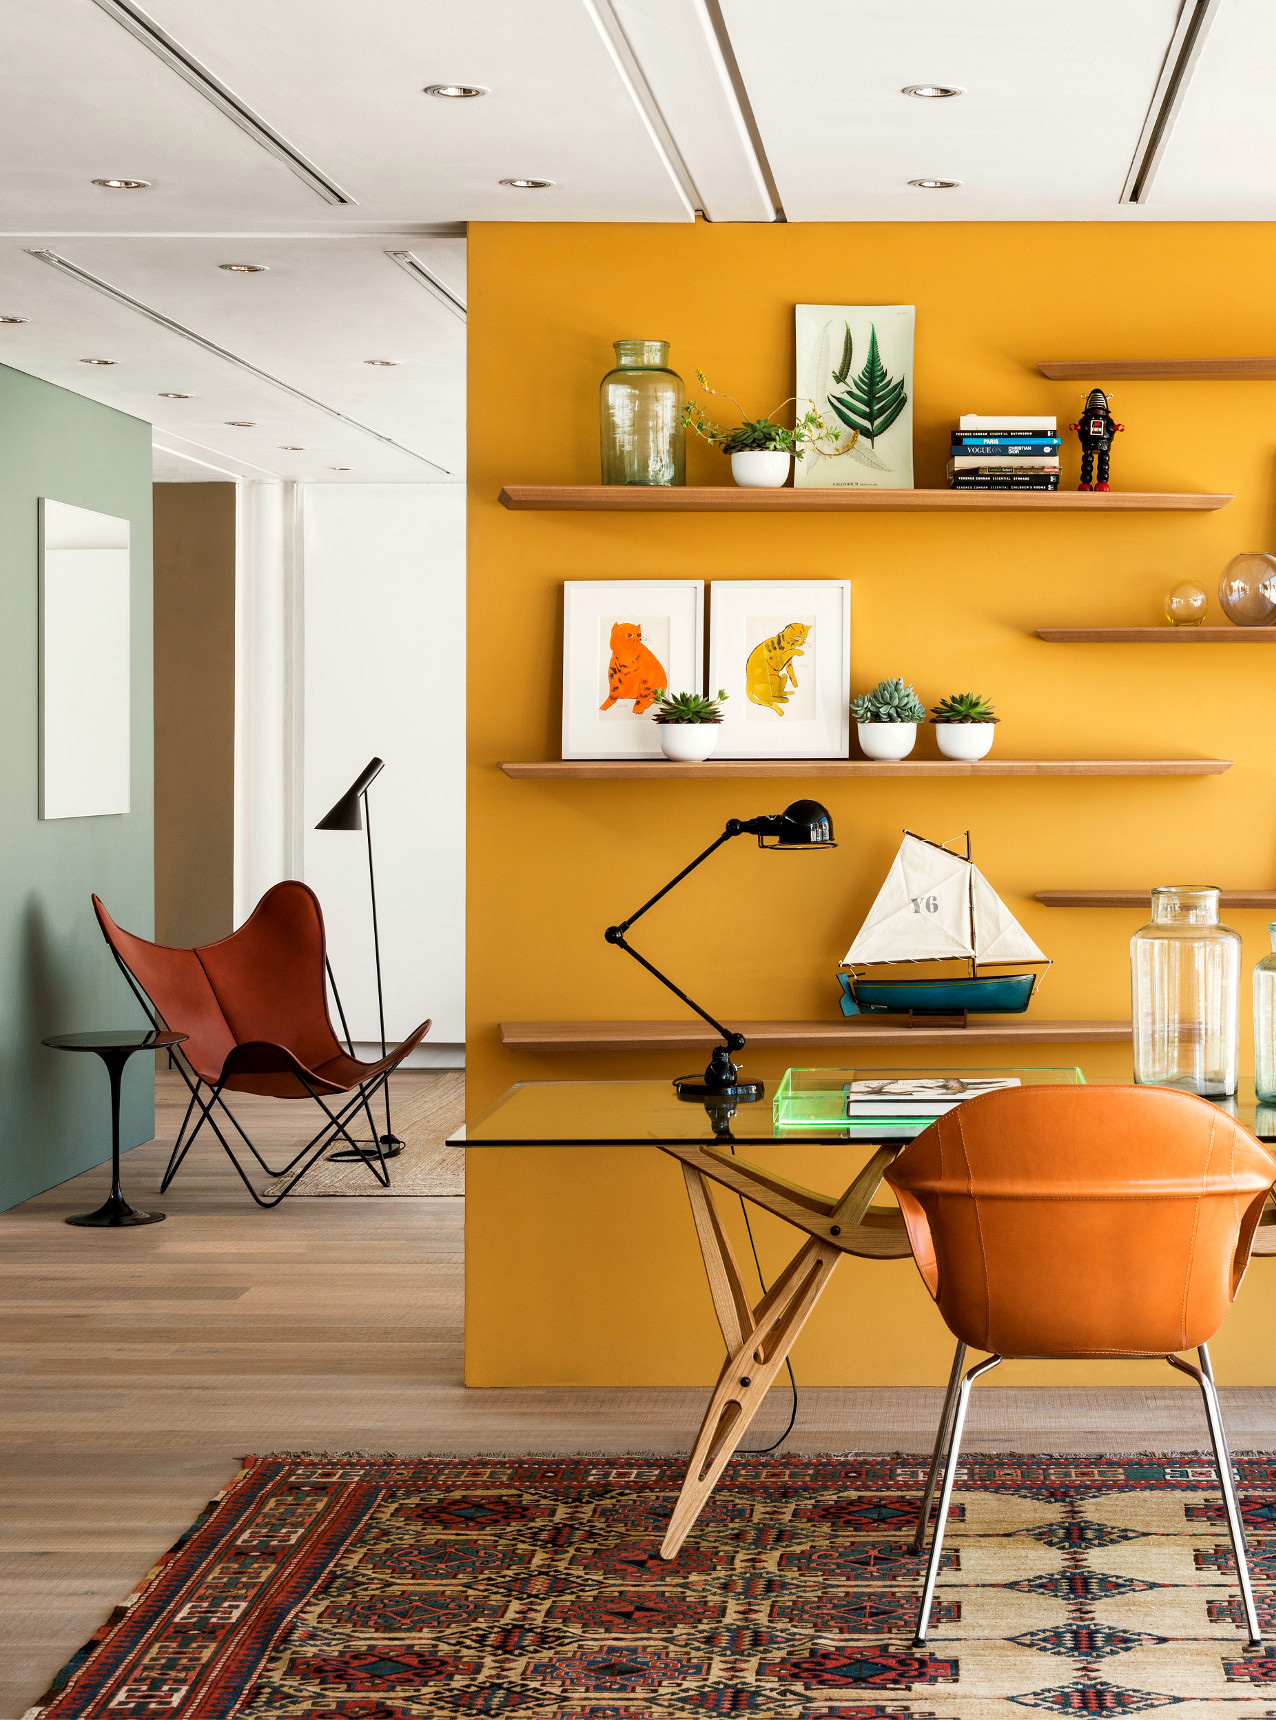 Oak tate skye plank in the conran store with open shelves on a yellow wall and a leather knoll butterfly chair